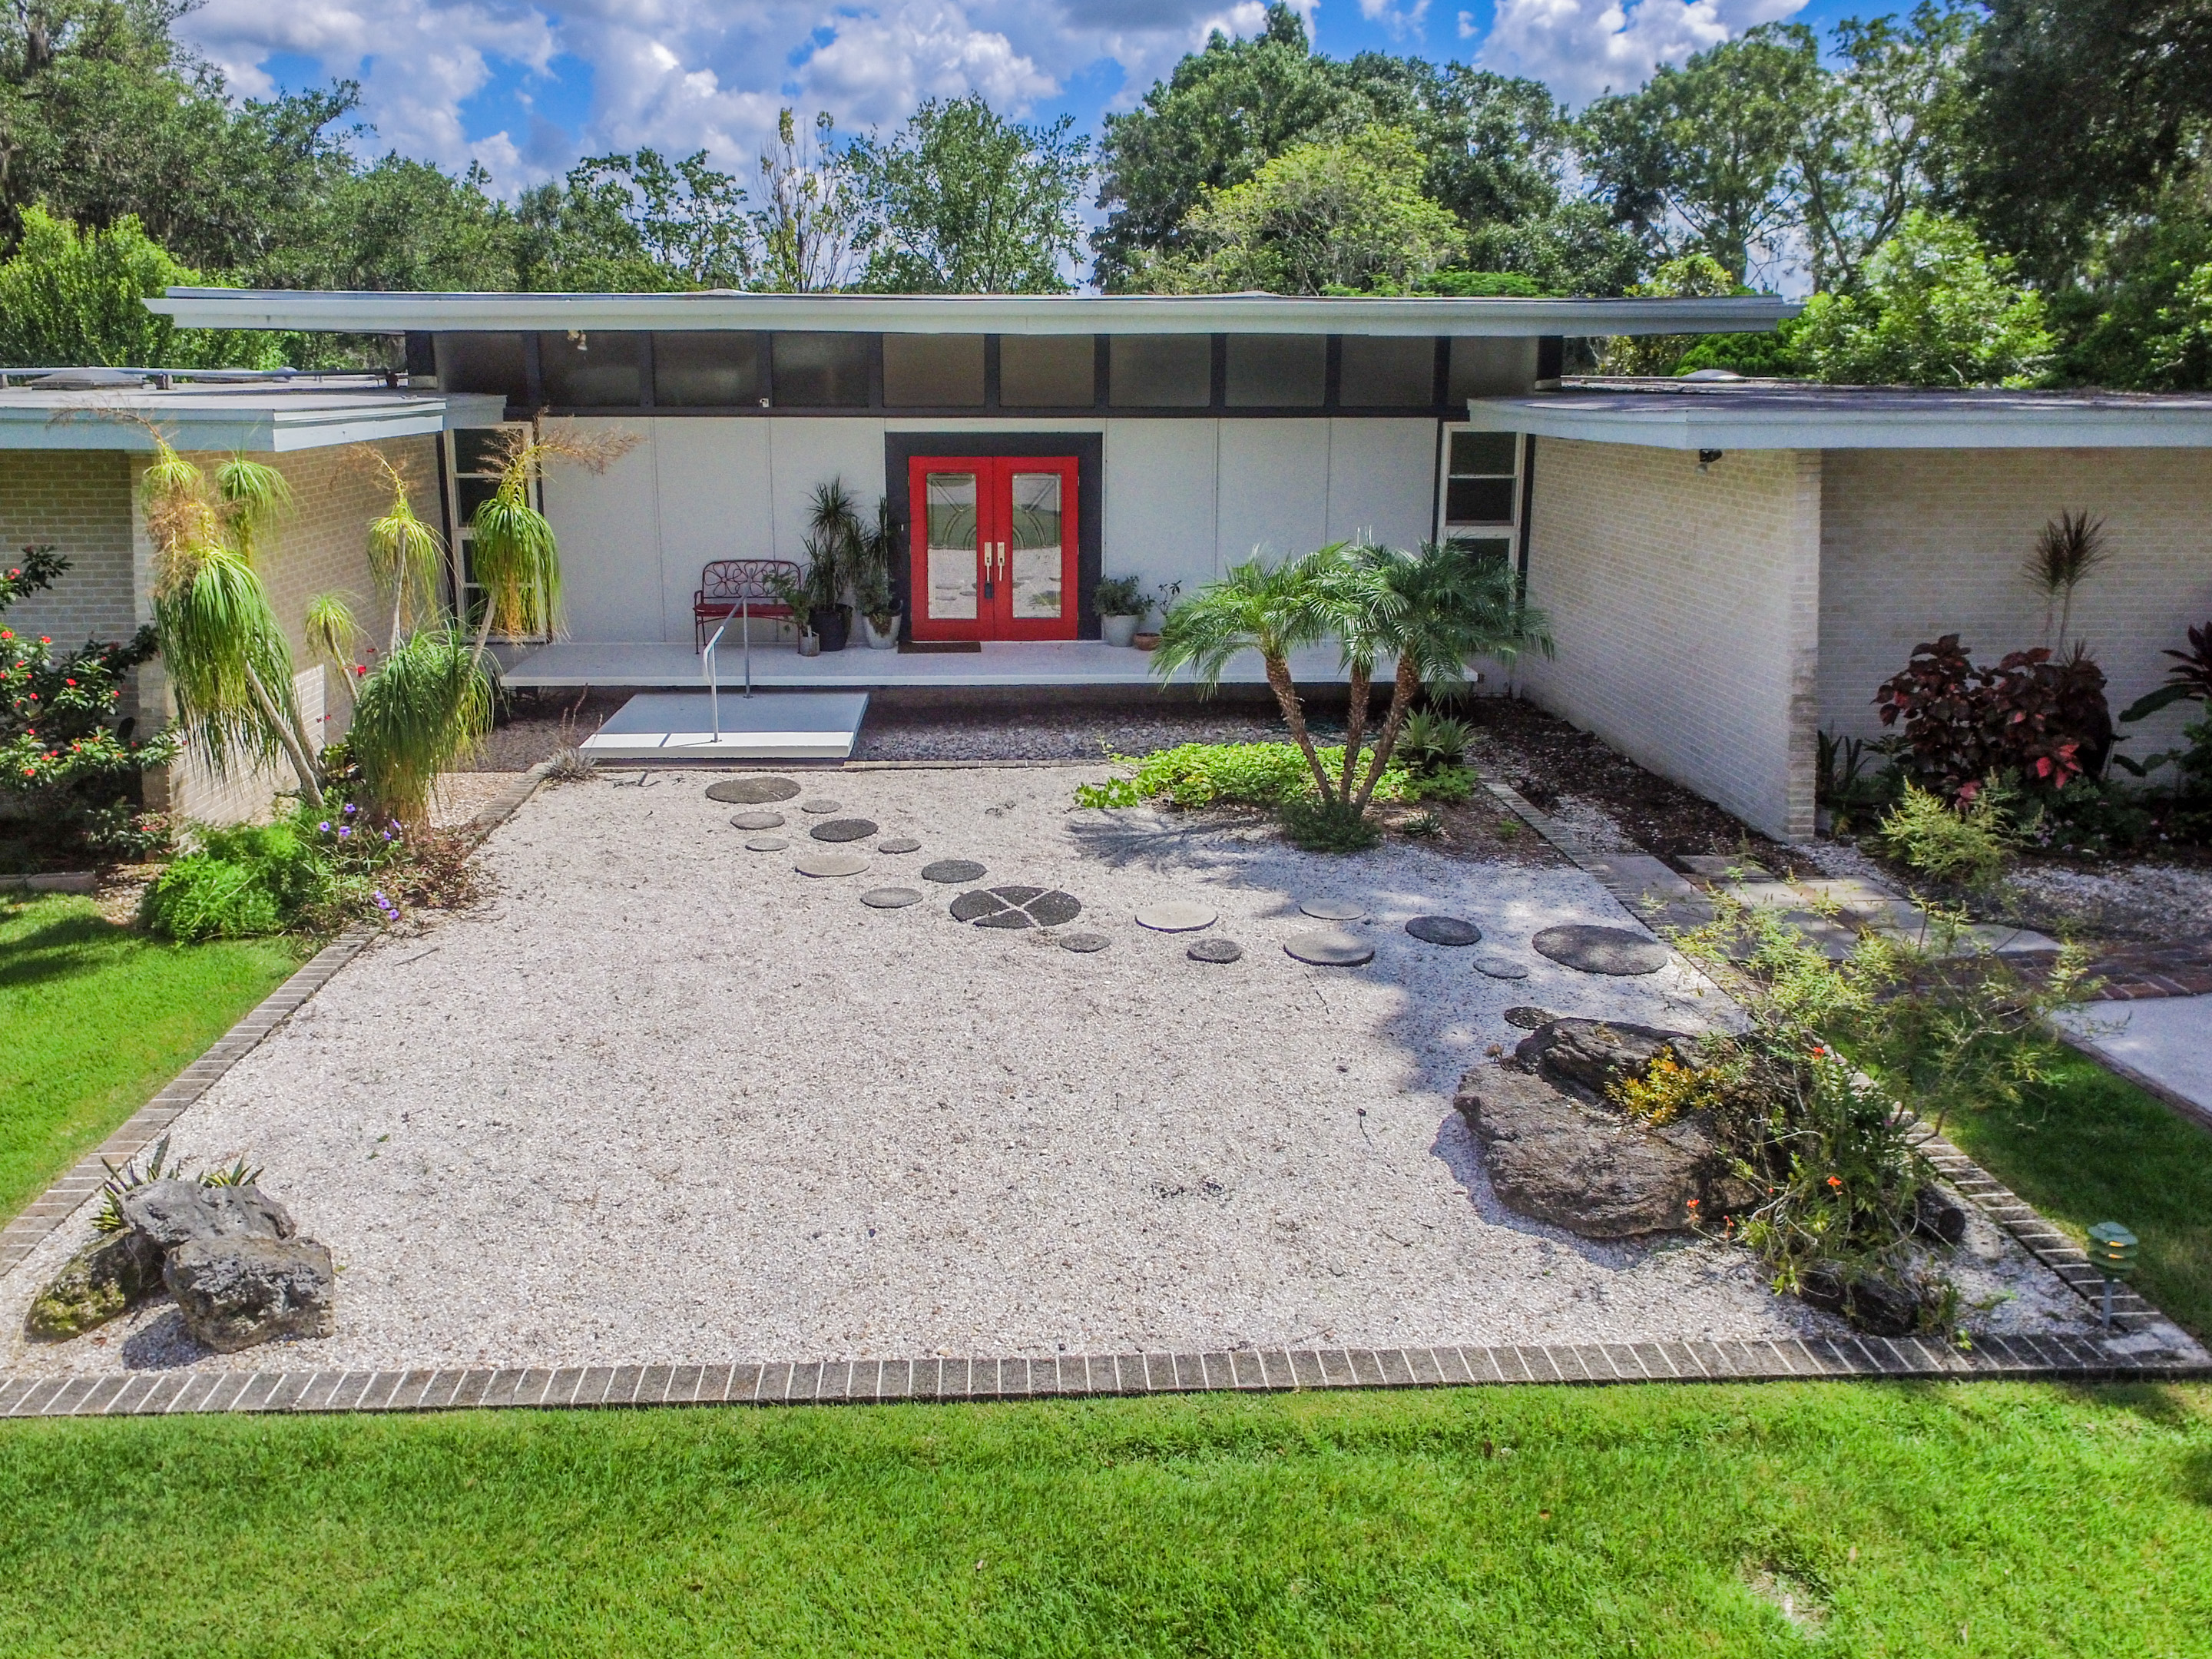 Frank DePasquale Mid Century Home For Sale In Tampa!